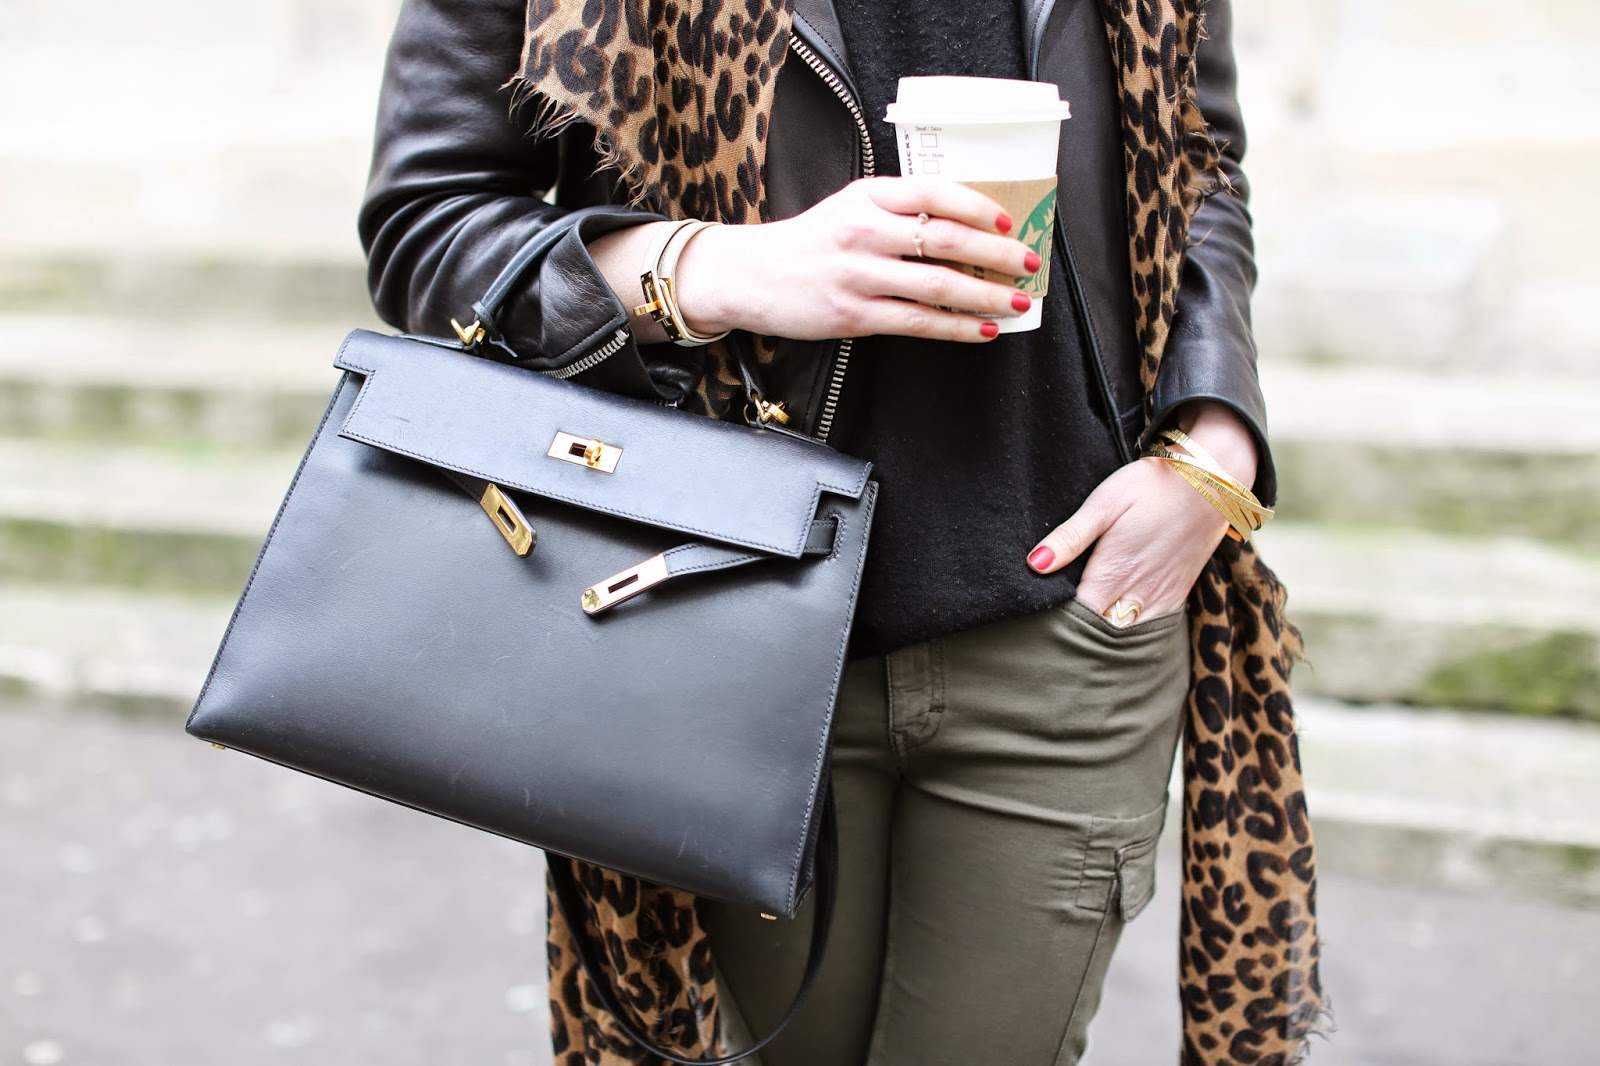 military, leopard, vuitton, hermès, acne, valentino, fashion blogger, starbucks, paris fashion week